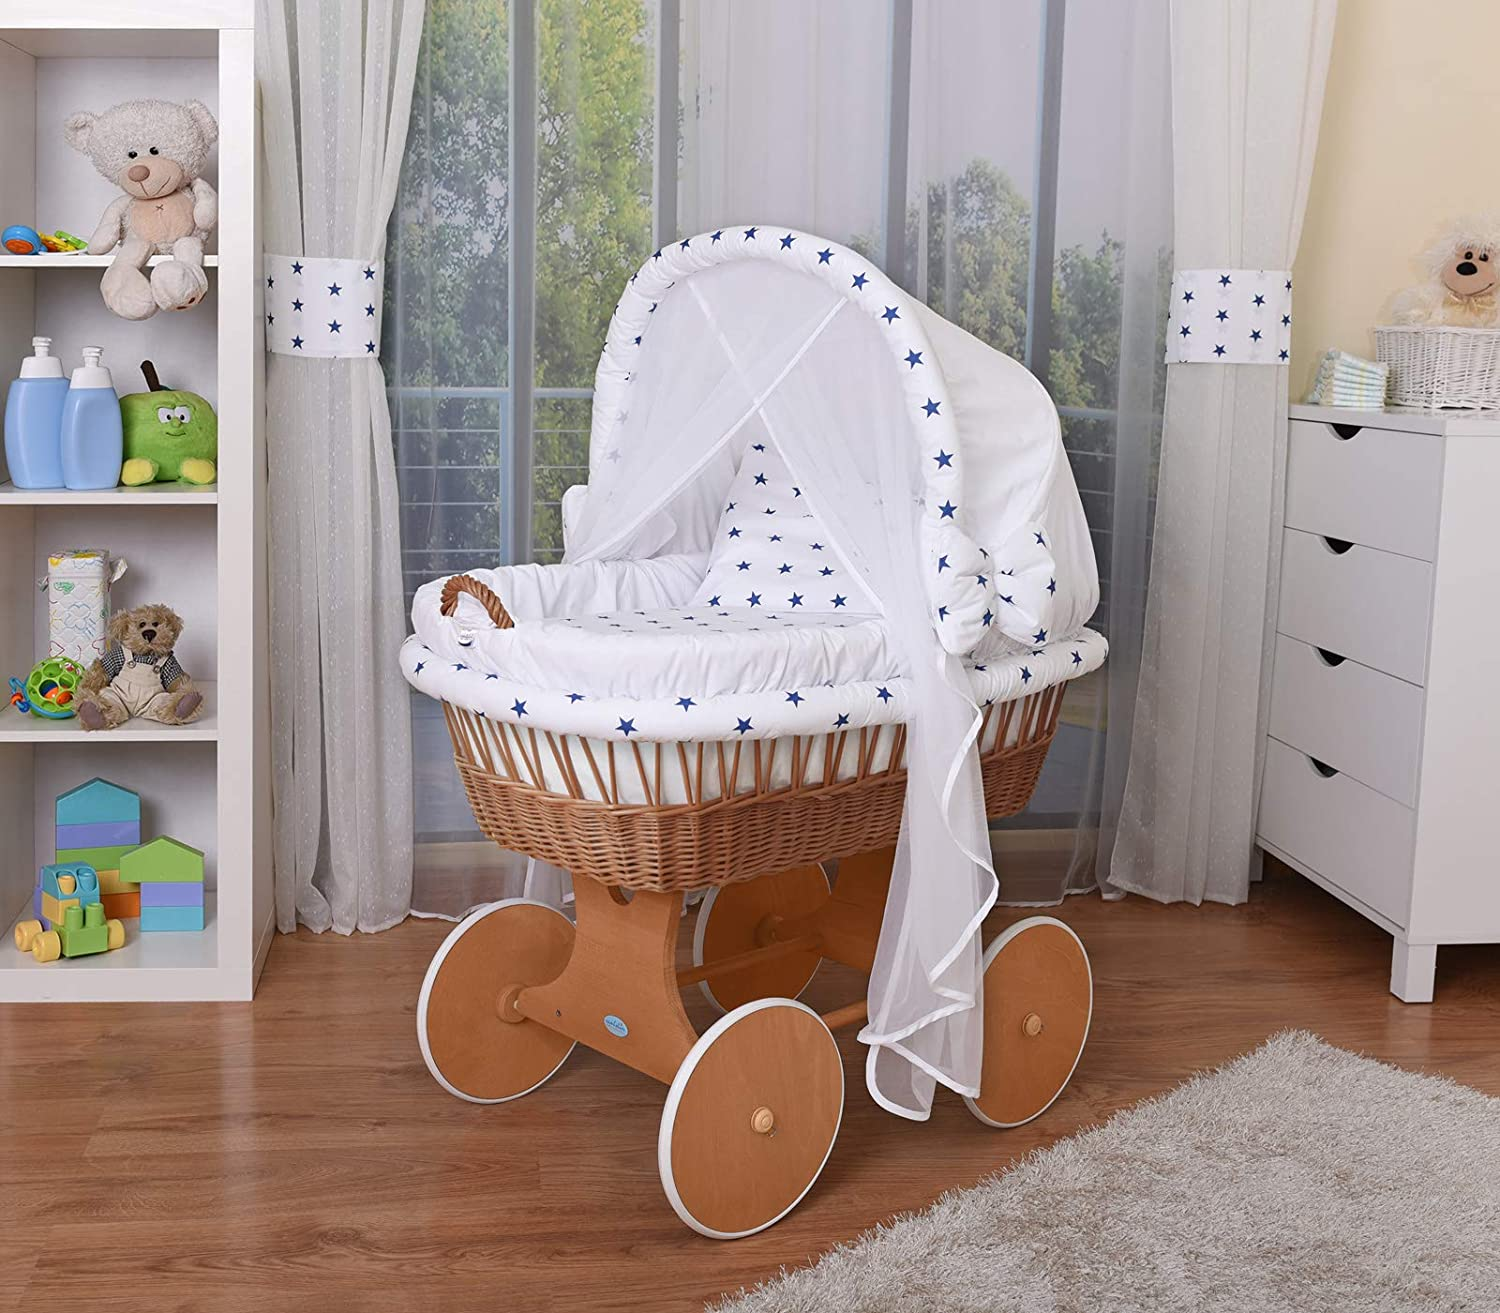 WALDIN Baby Wicker Cradle,Moses Basket,44 Models Available,Grey Painted Stand/Wheels,Textile Colour White